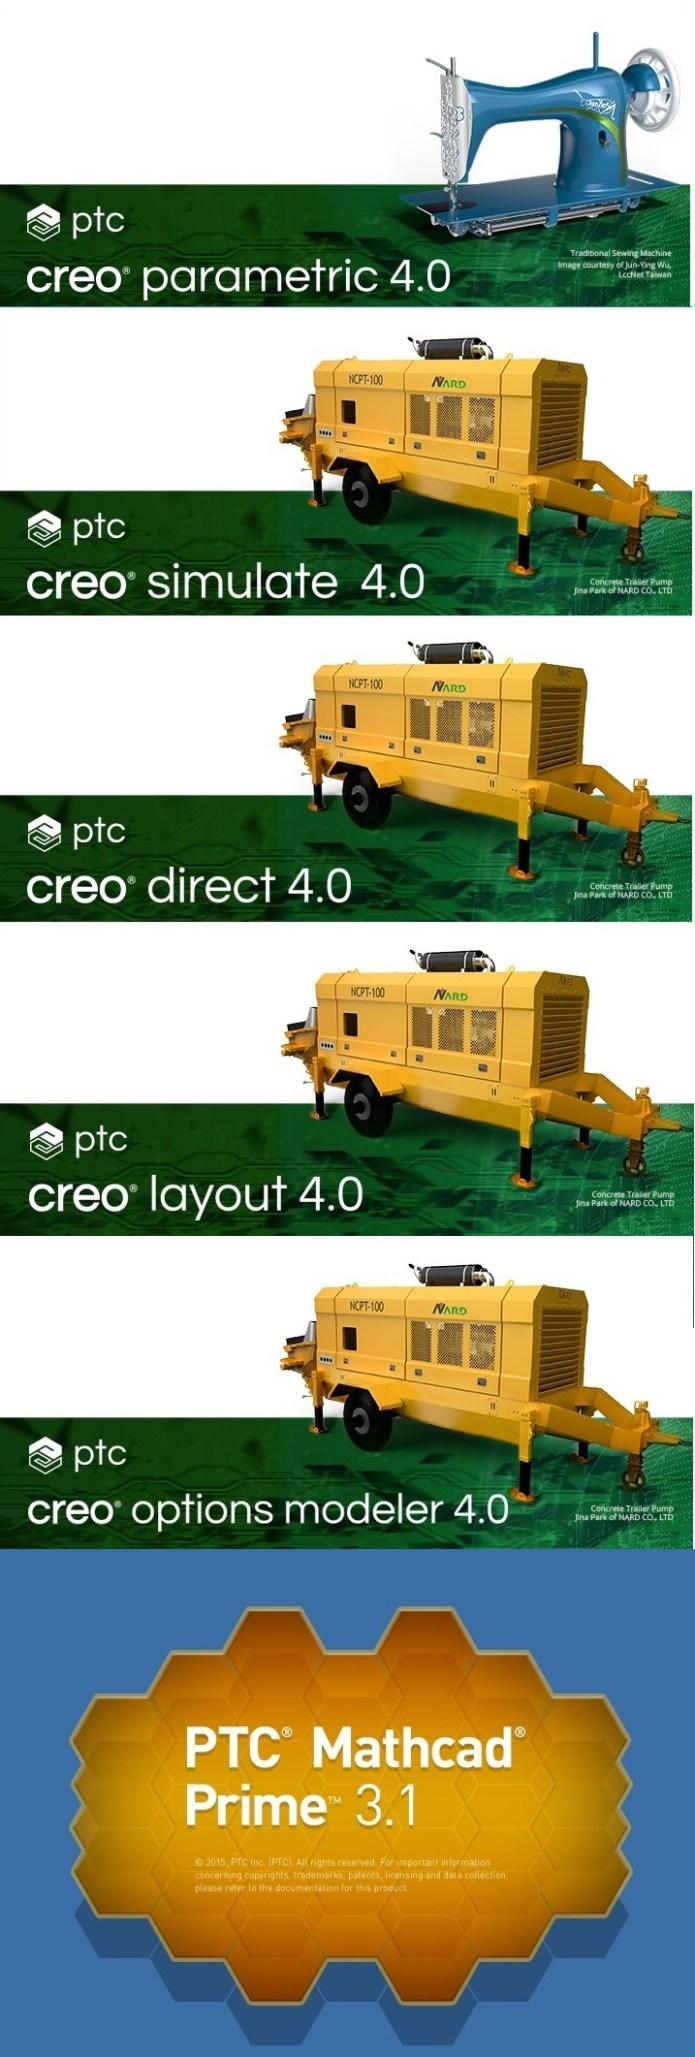 PTC Creo 4.0 F000 full software